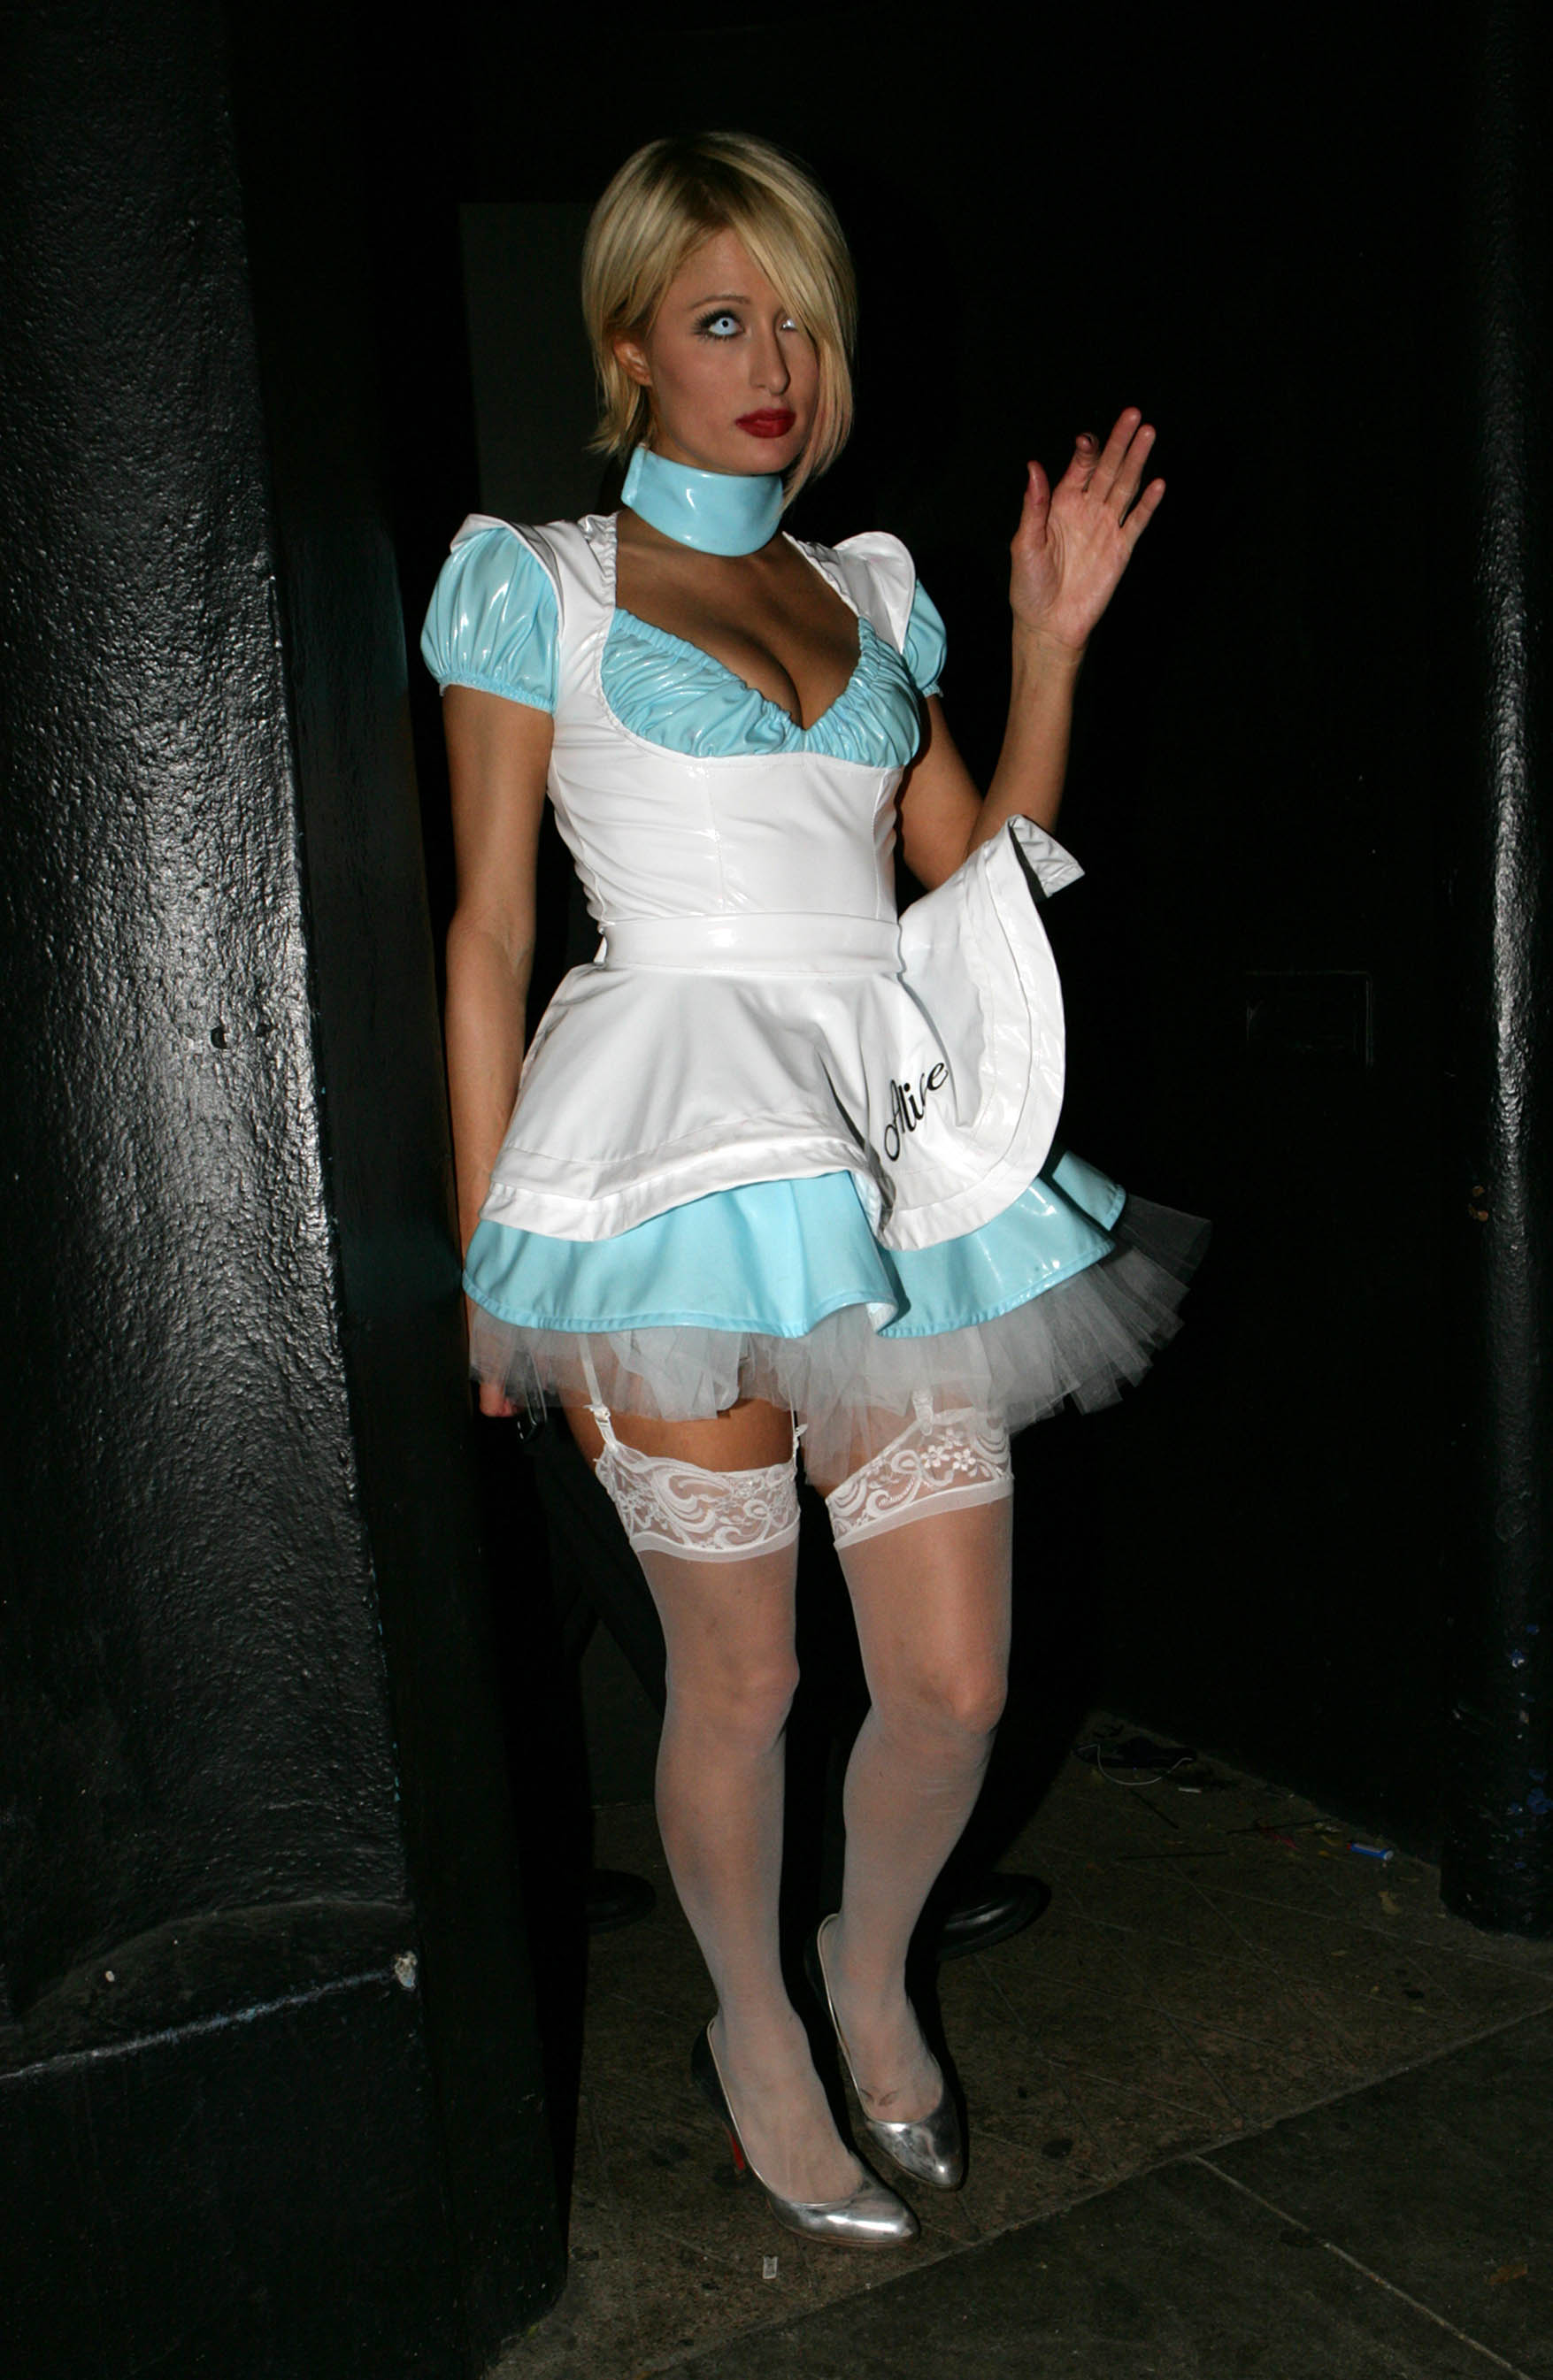 03912_celeb-city.eu_Paris_Hilton_at_the_Halloween_Party_in_Beverly_Hills_27.10.2007_01_123_1010lo.jpg